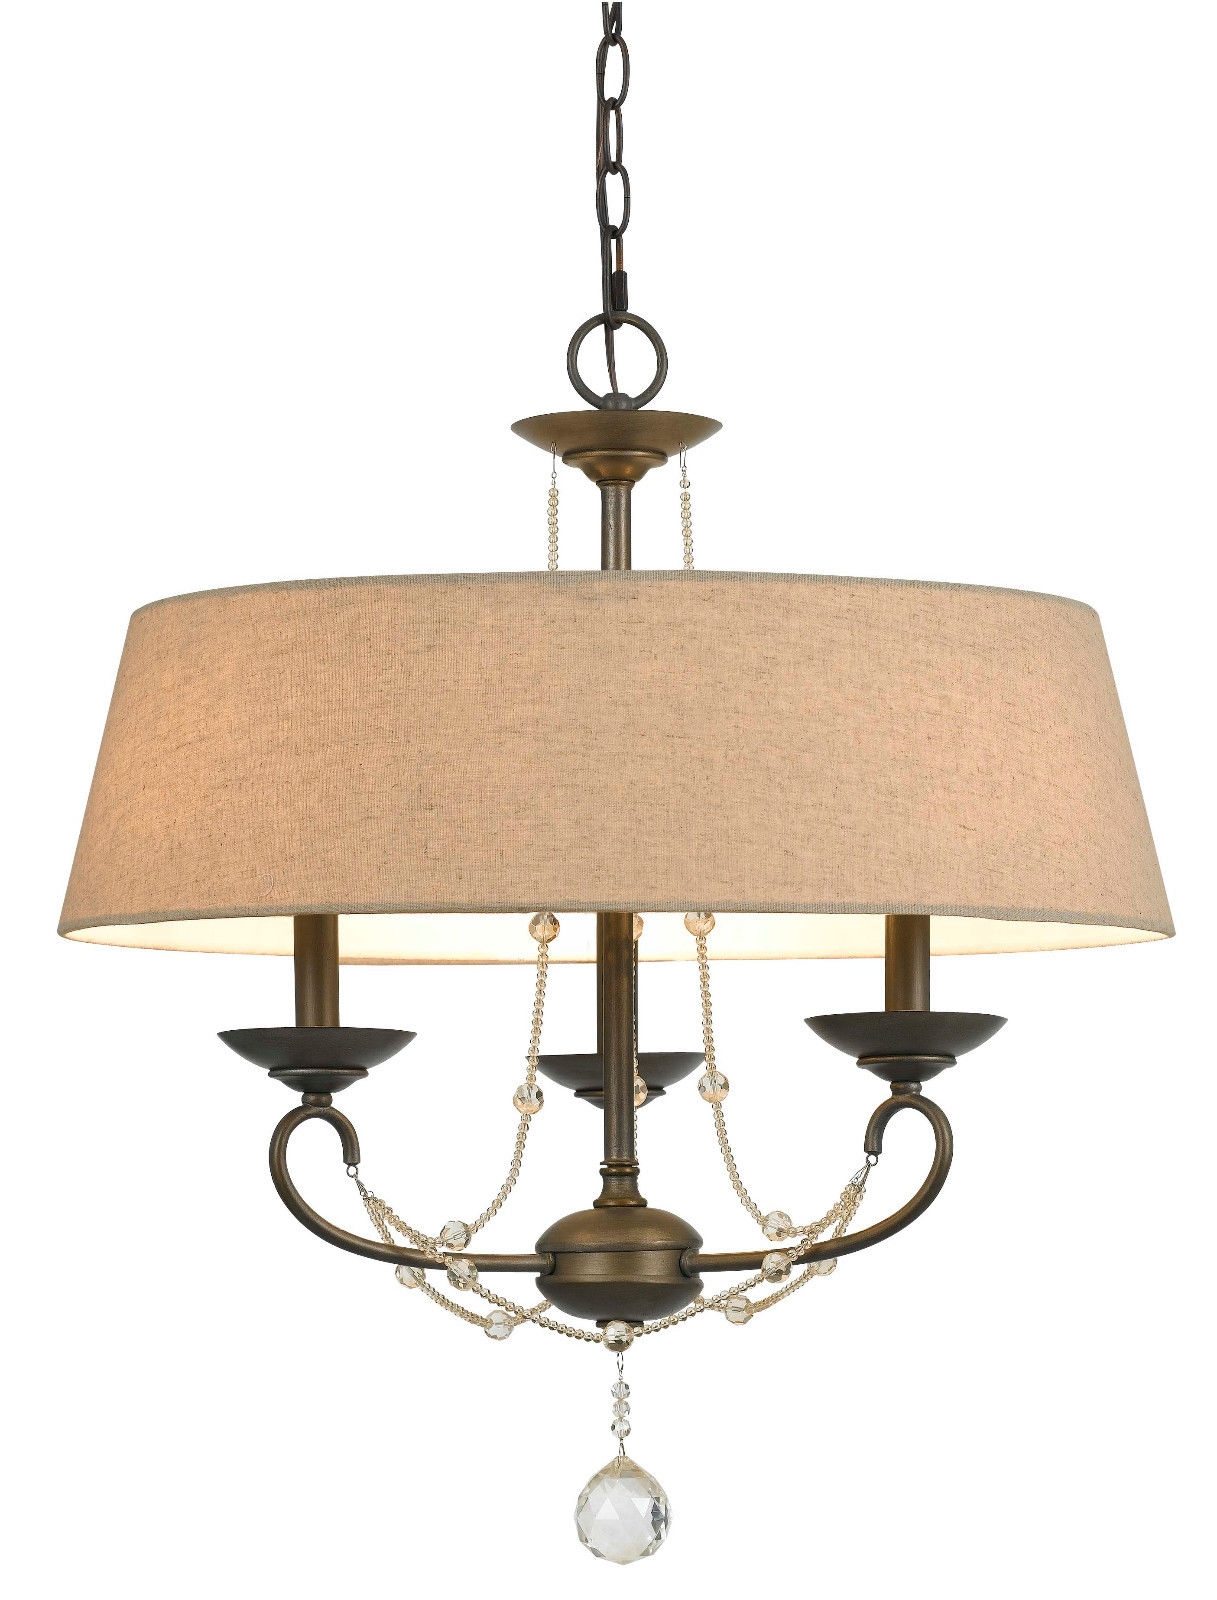 Edvivi Llc 6light Antique Bronze Crystal Chandelier Pendant Inside Chandeliers With Lamp Shades (Image 15 of 25)